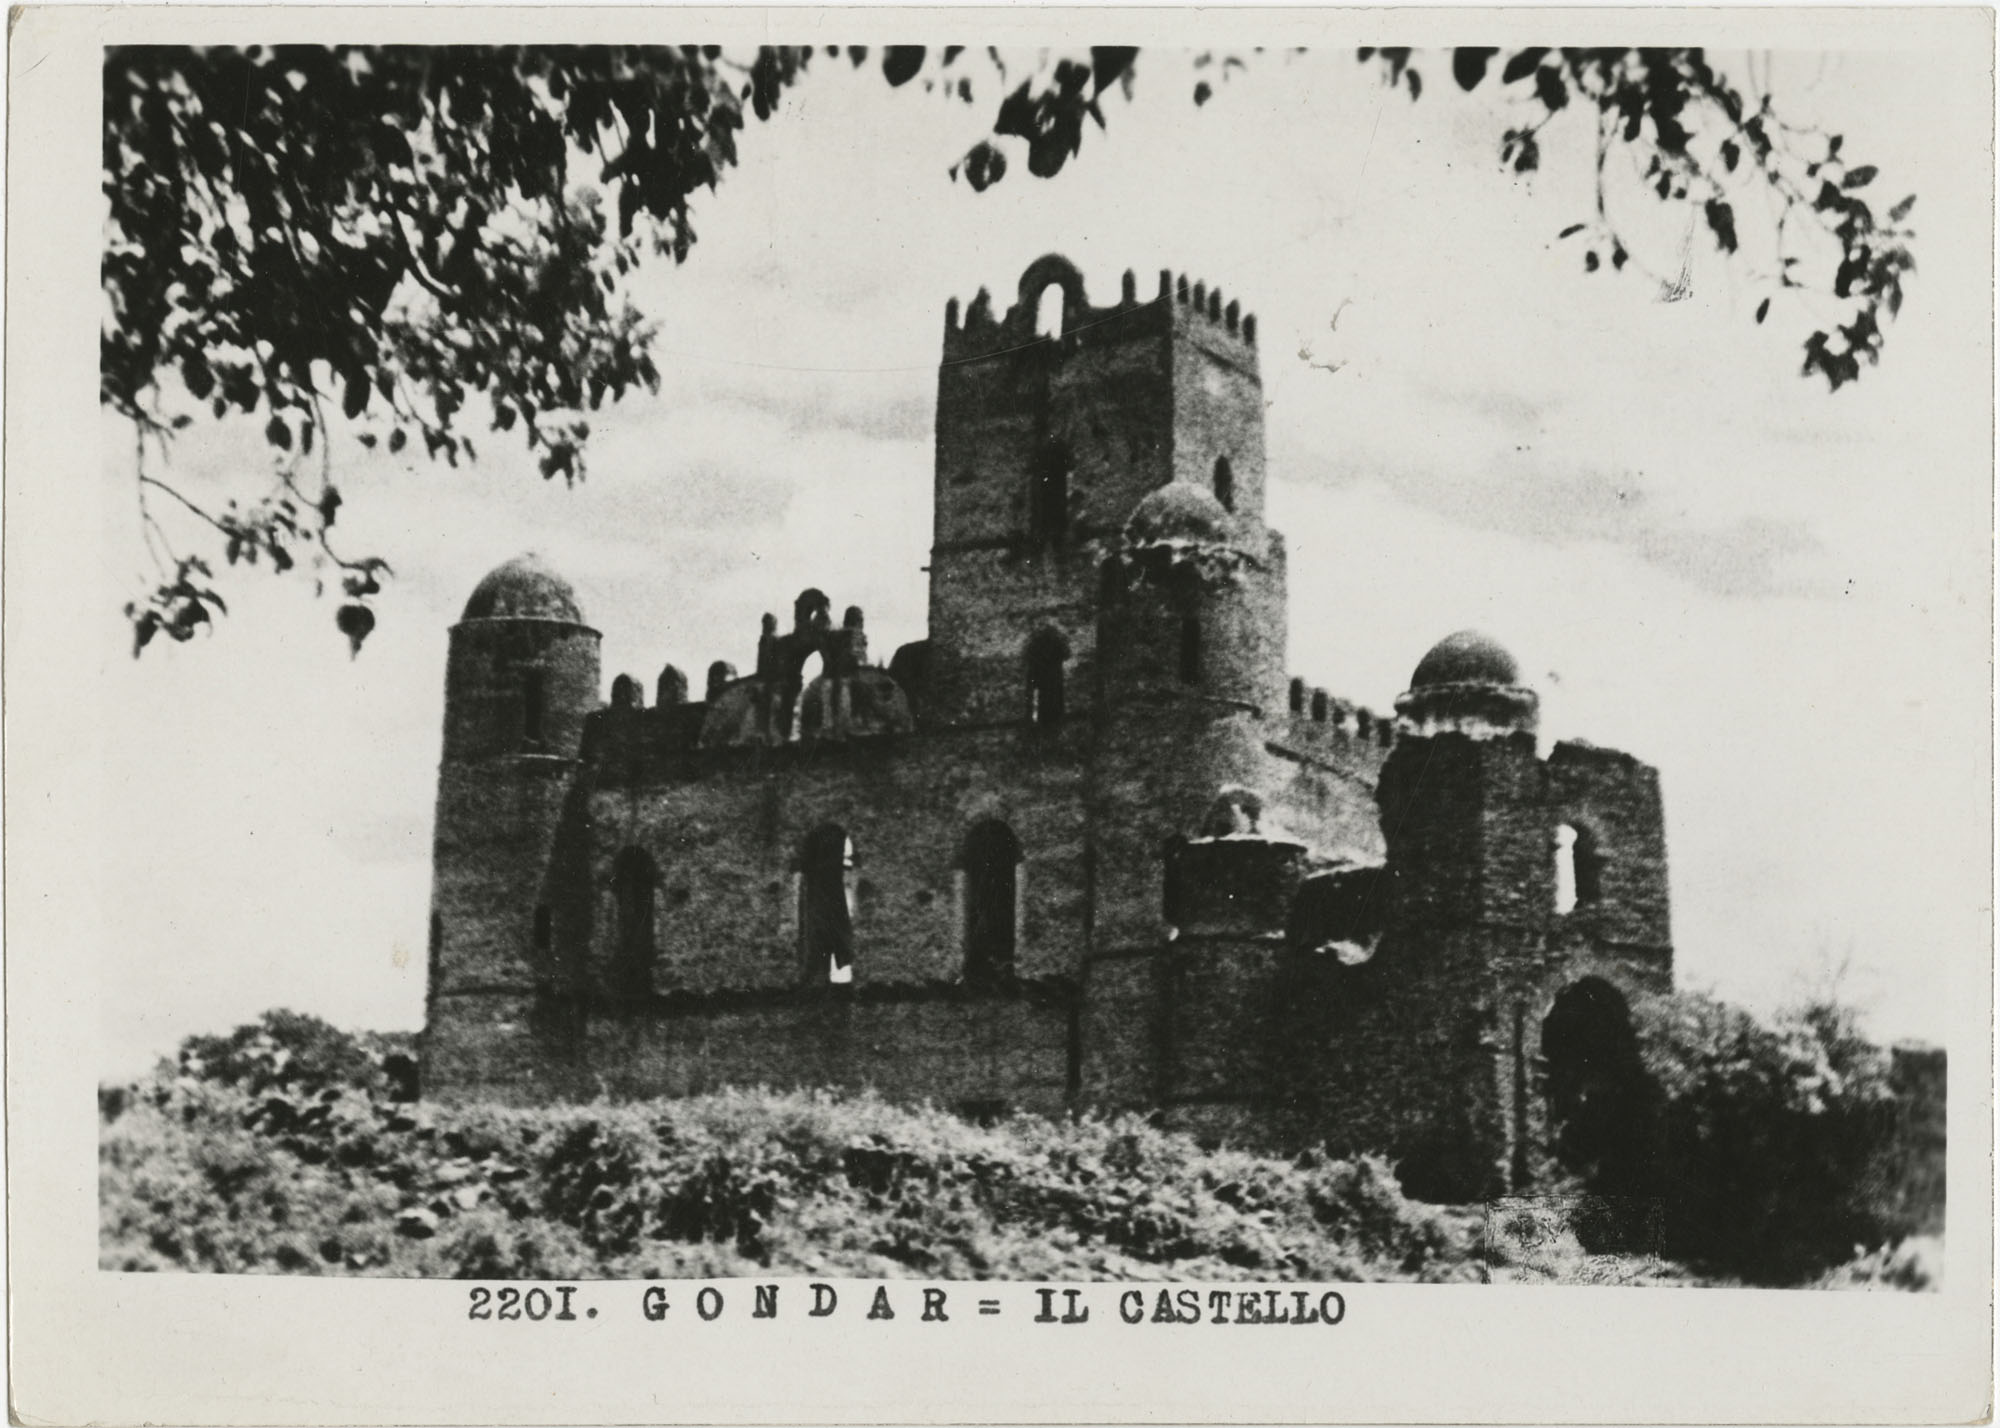 A castle's ruins in Gondar, Ethiopia